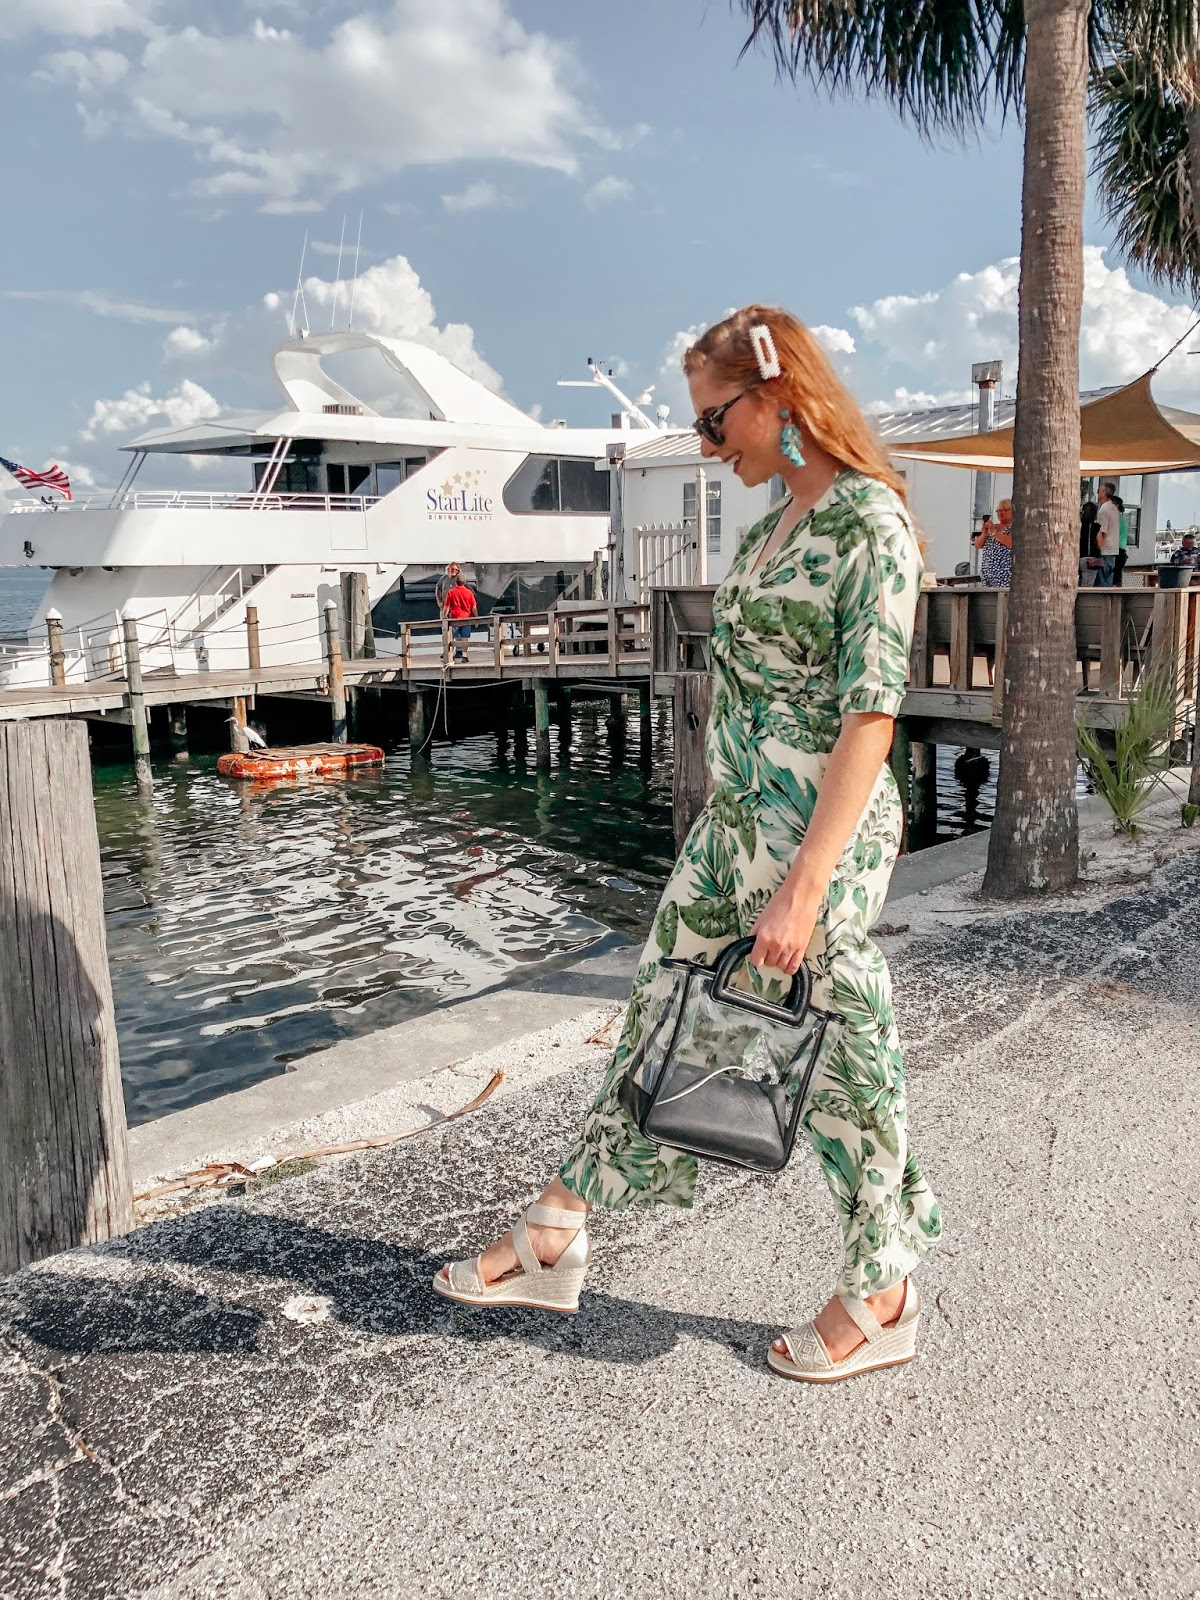 tampa blogger affordable by amanda wearing a yellow and green palm print jumpsuit from bealls outlet. she is walking in front of the starlite cruise ship. she is holding a clear bag from Target and wearing platform tommy hilfiger espadrilles from bealls outlet.